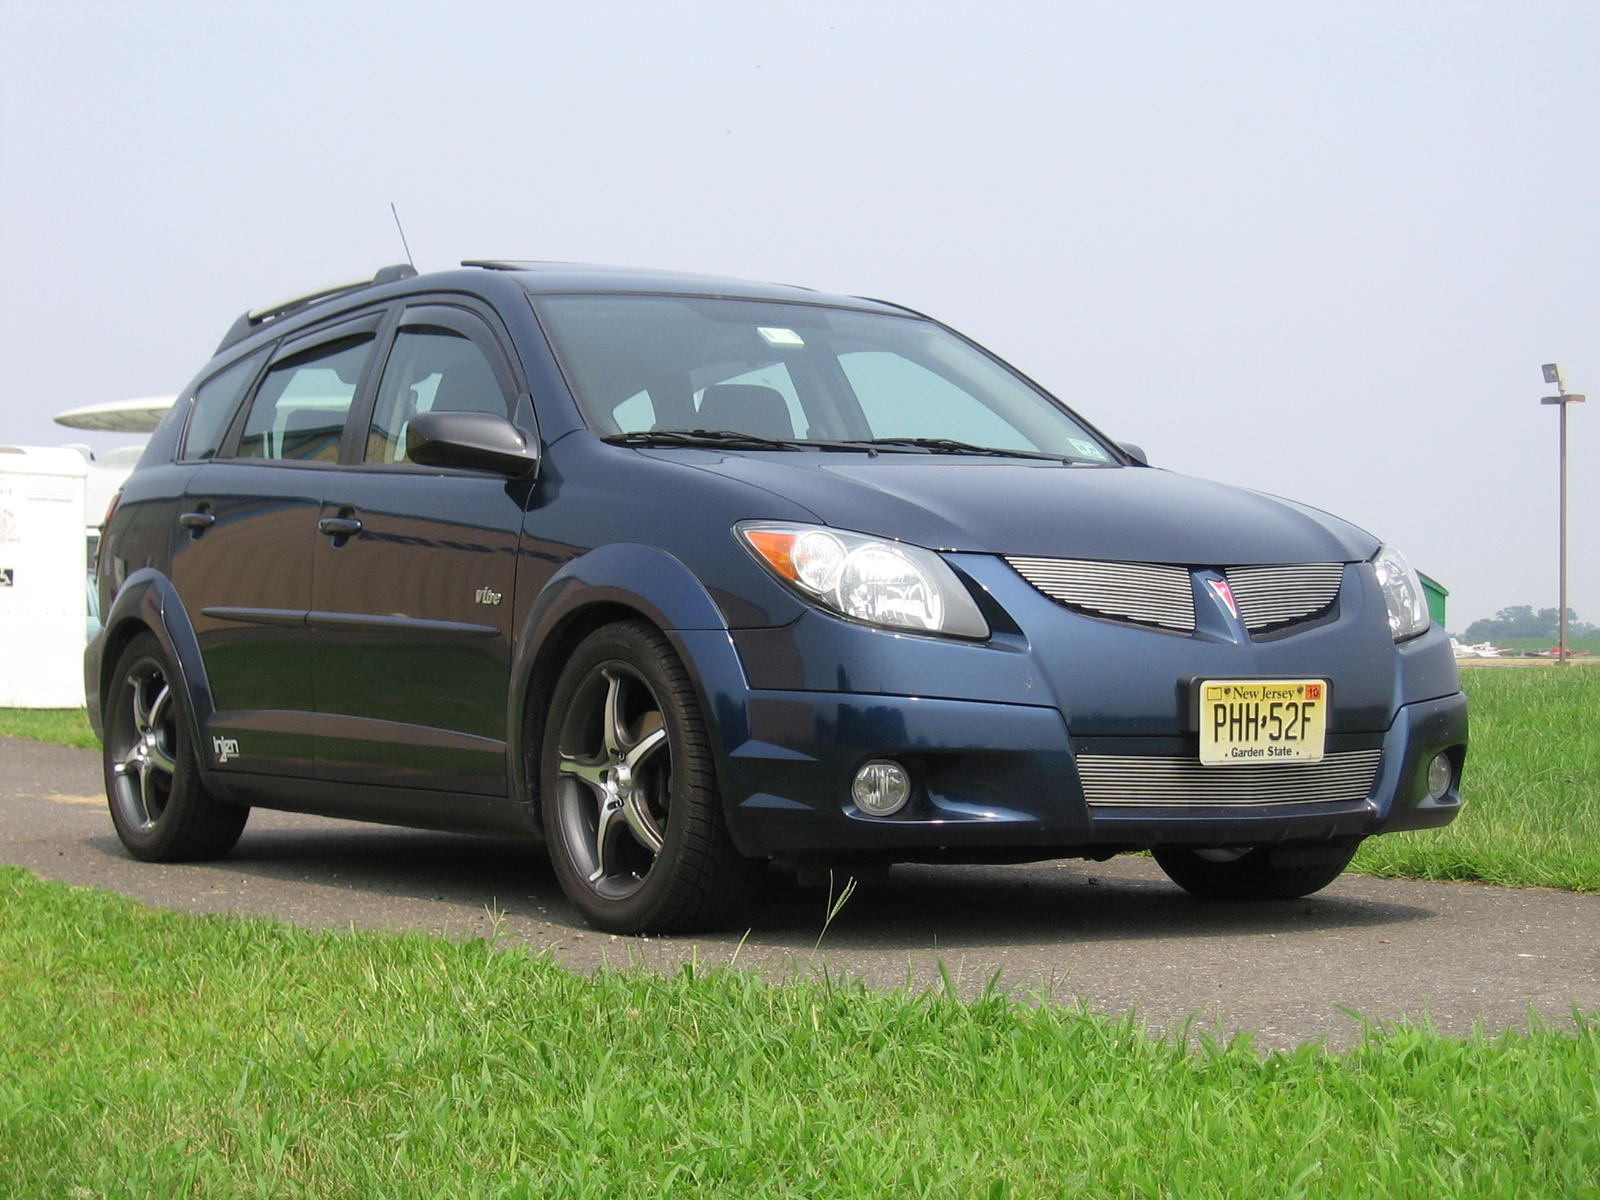 2004 Pontiac Vibe Base picture